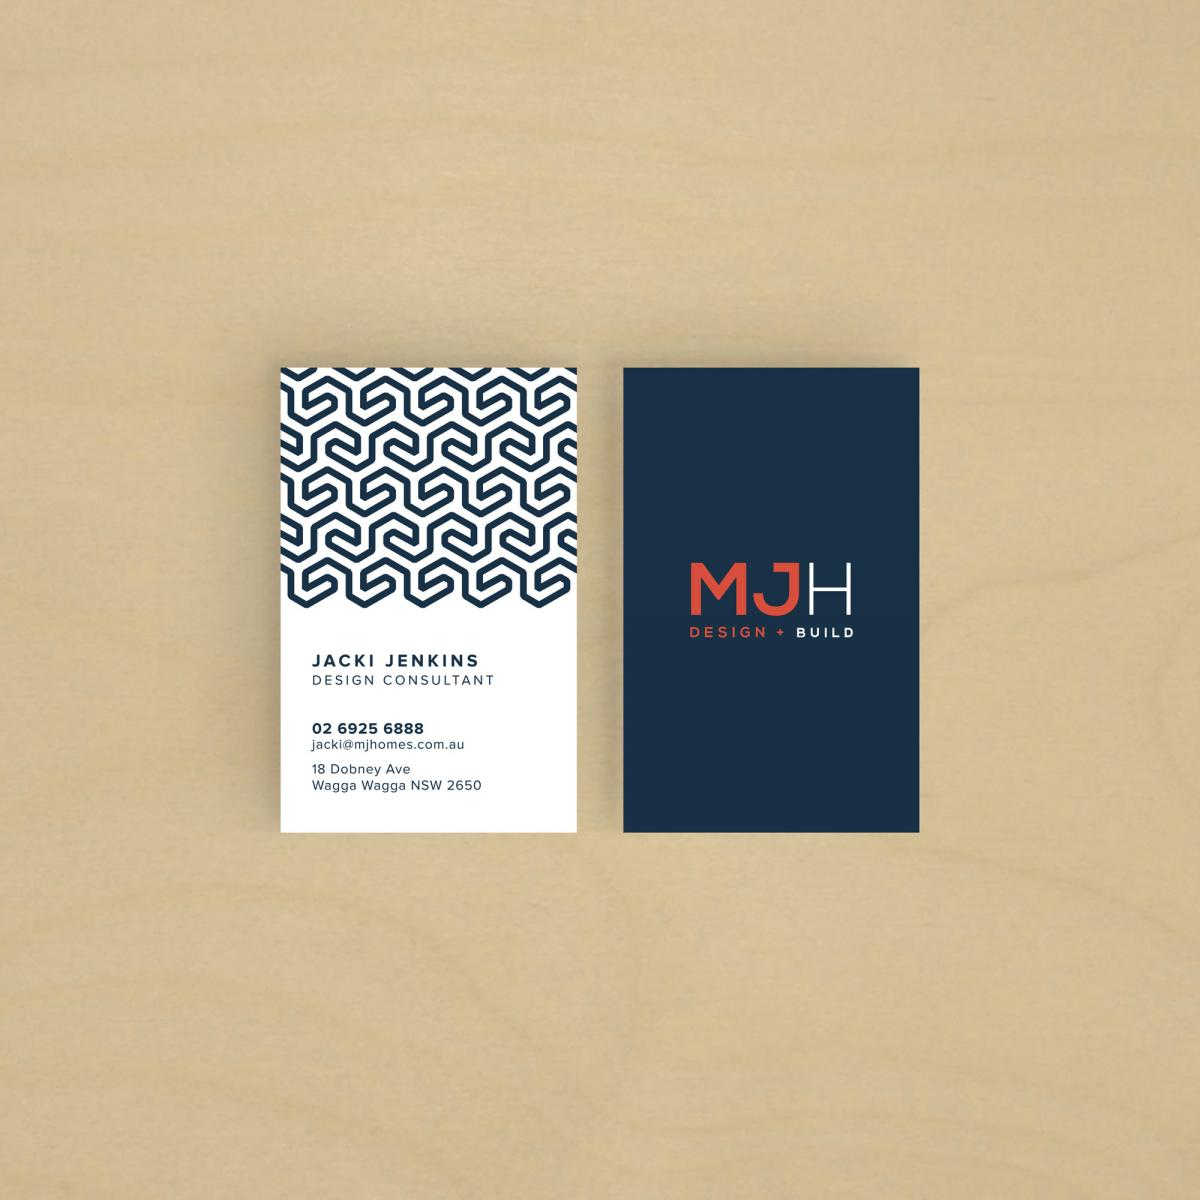 Matt Jenkins – Business cards wagga